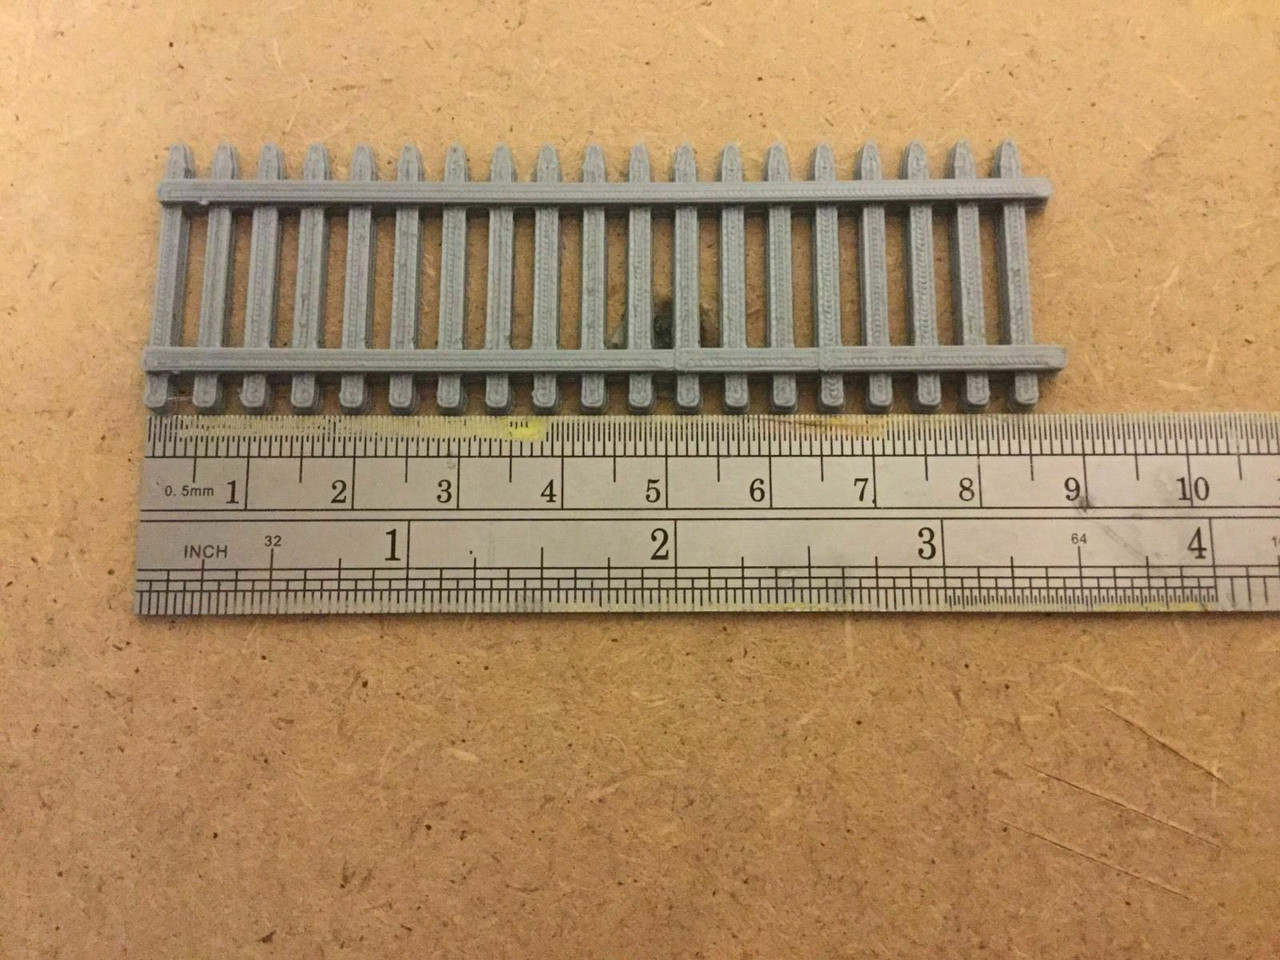 1/76 3d Printed Security Fence Would Suit 1/76 00 Gauge (Grey)